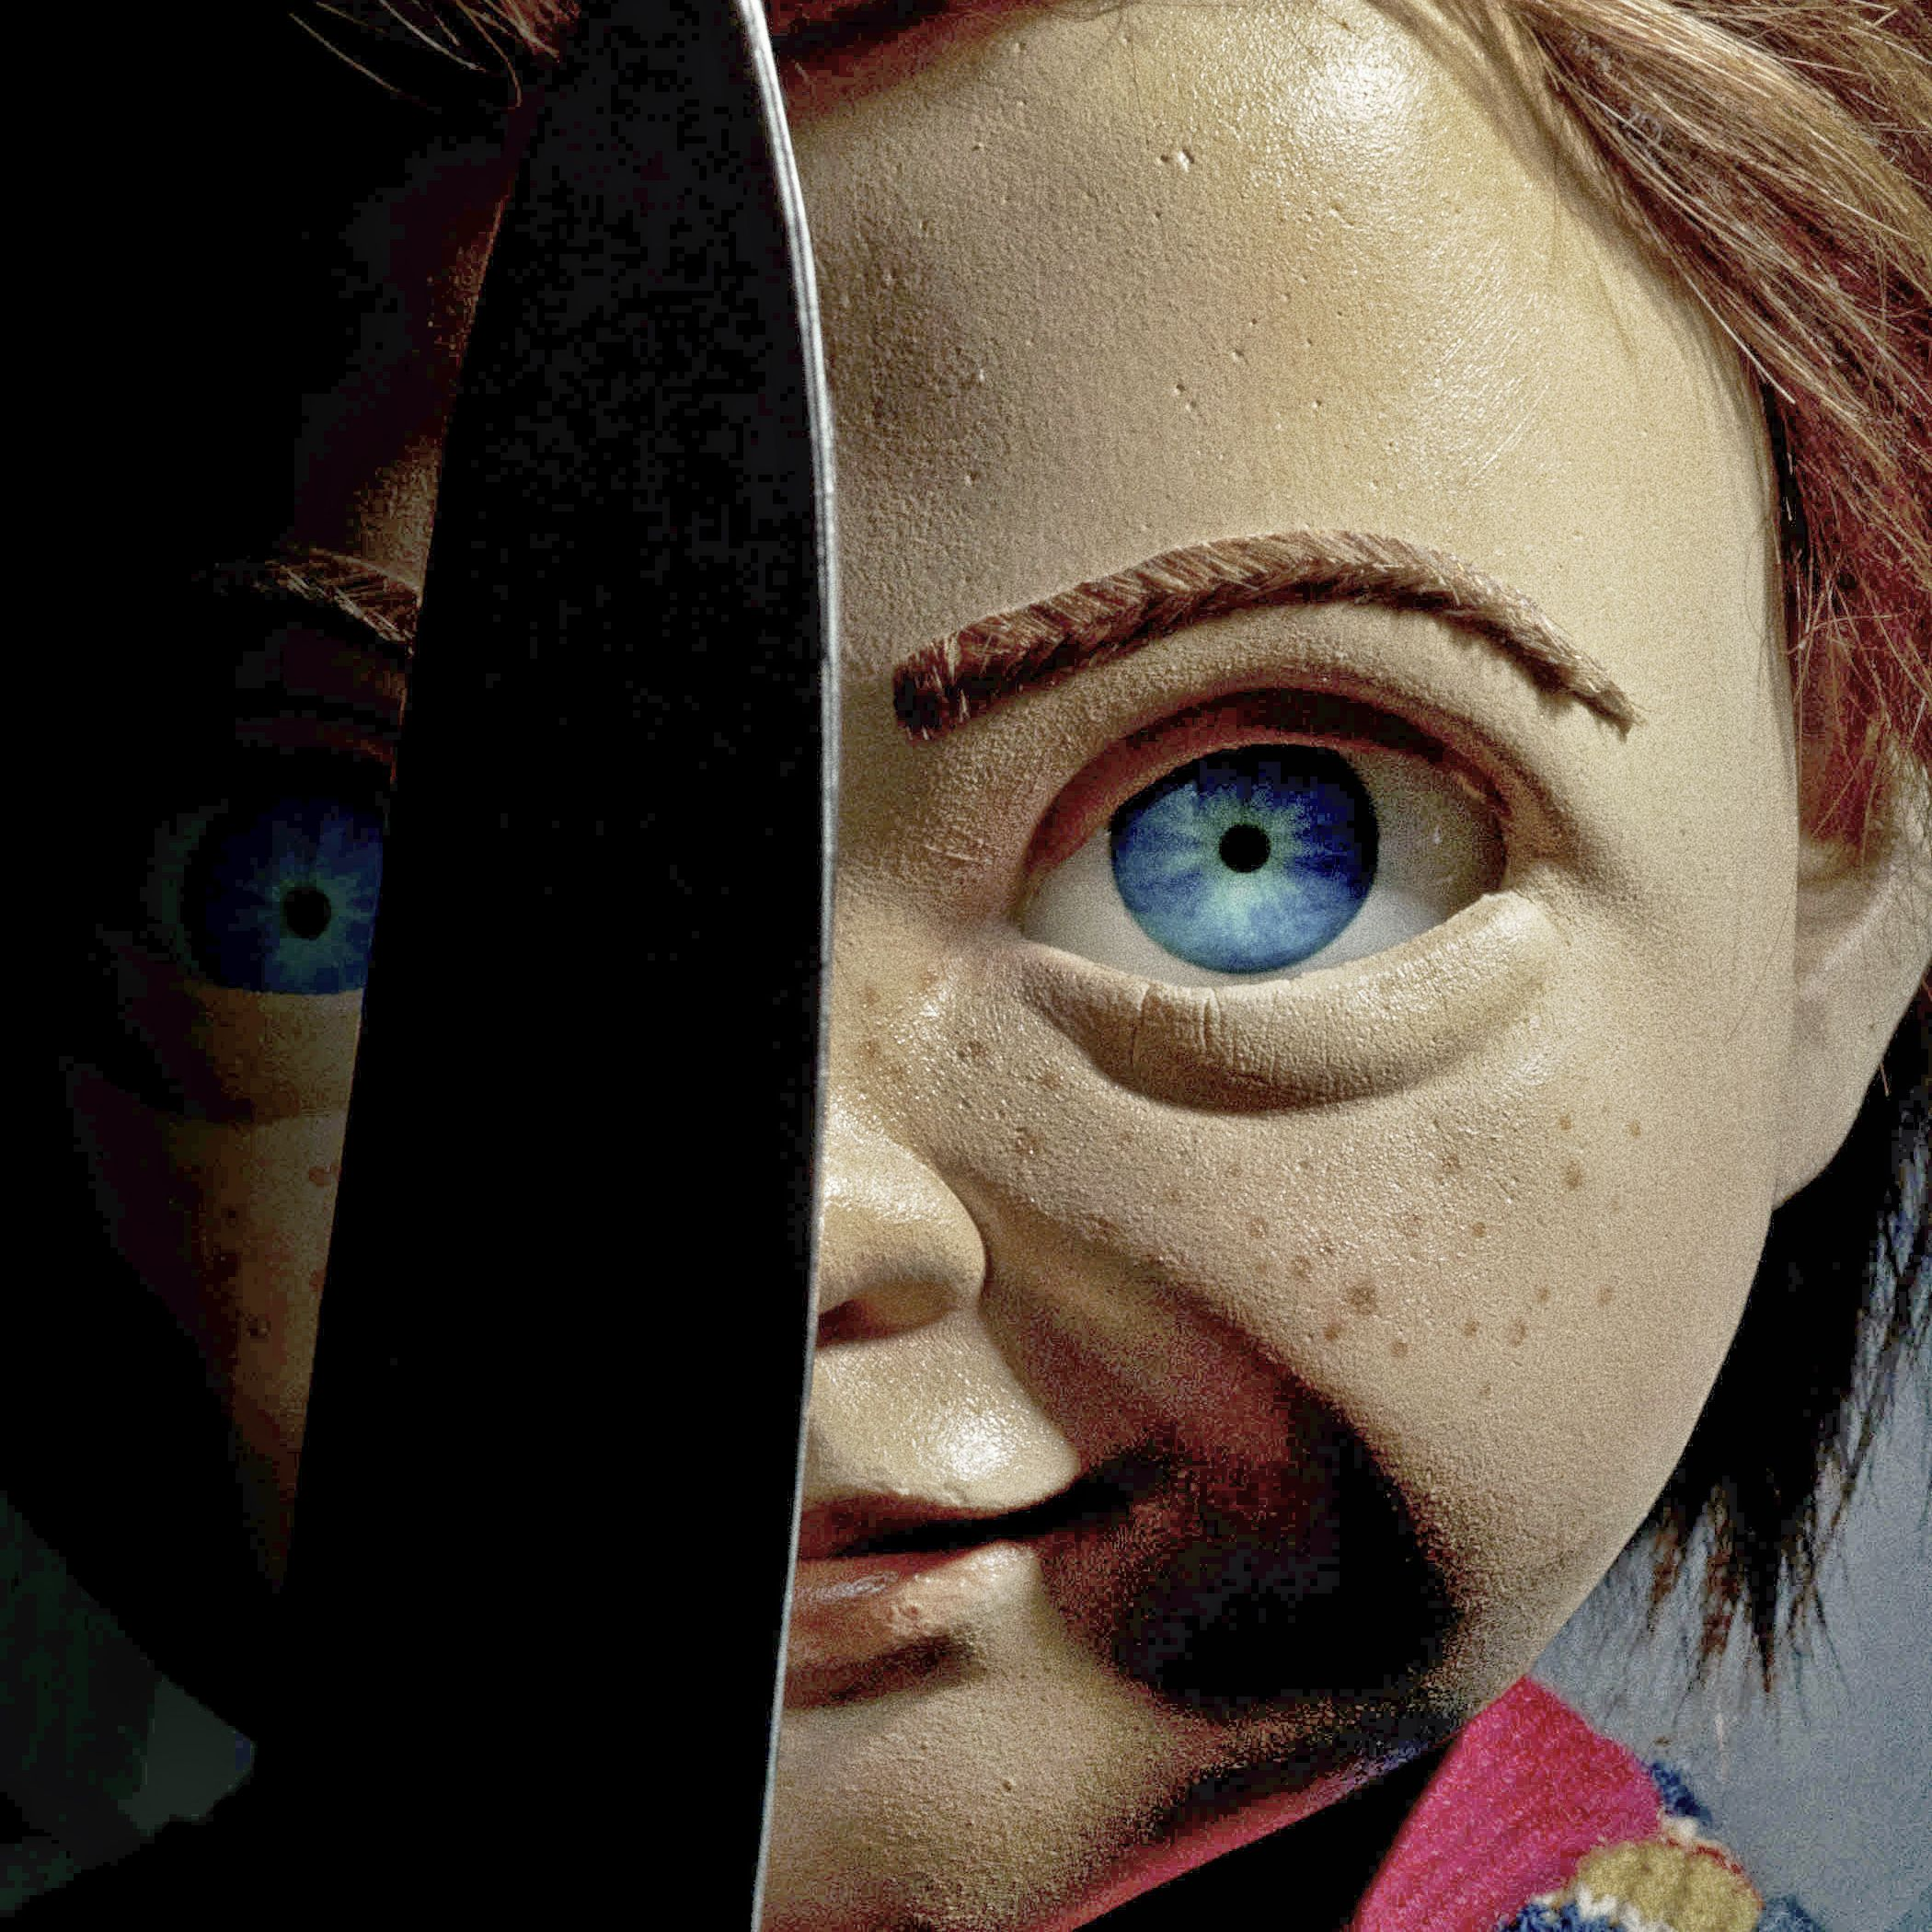 How They Pulled Off That Forklift Scene in 'Child's Play'